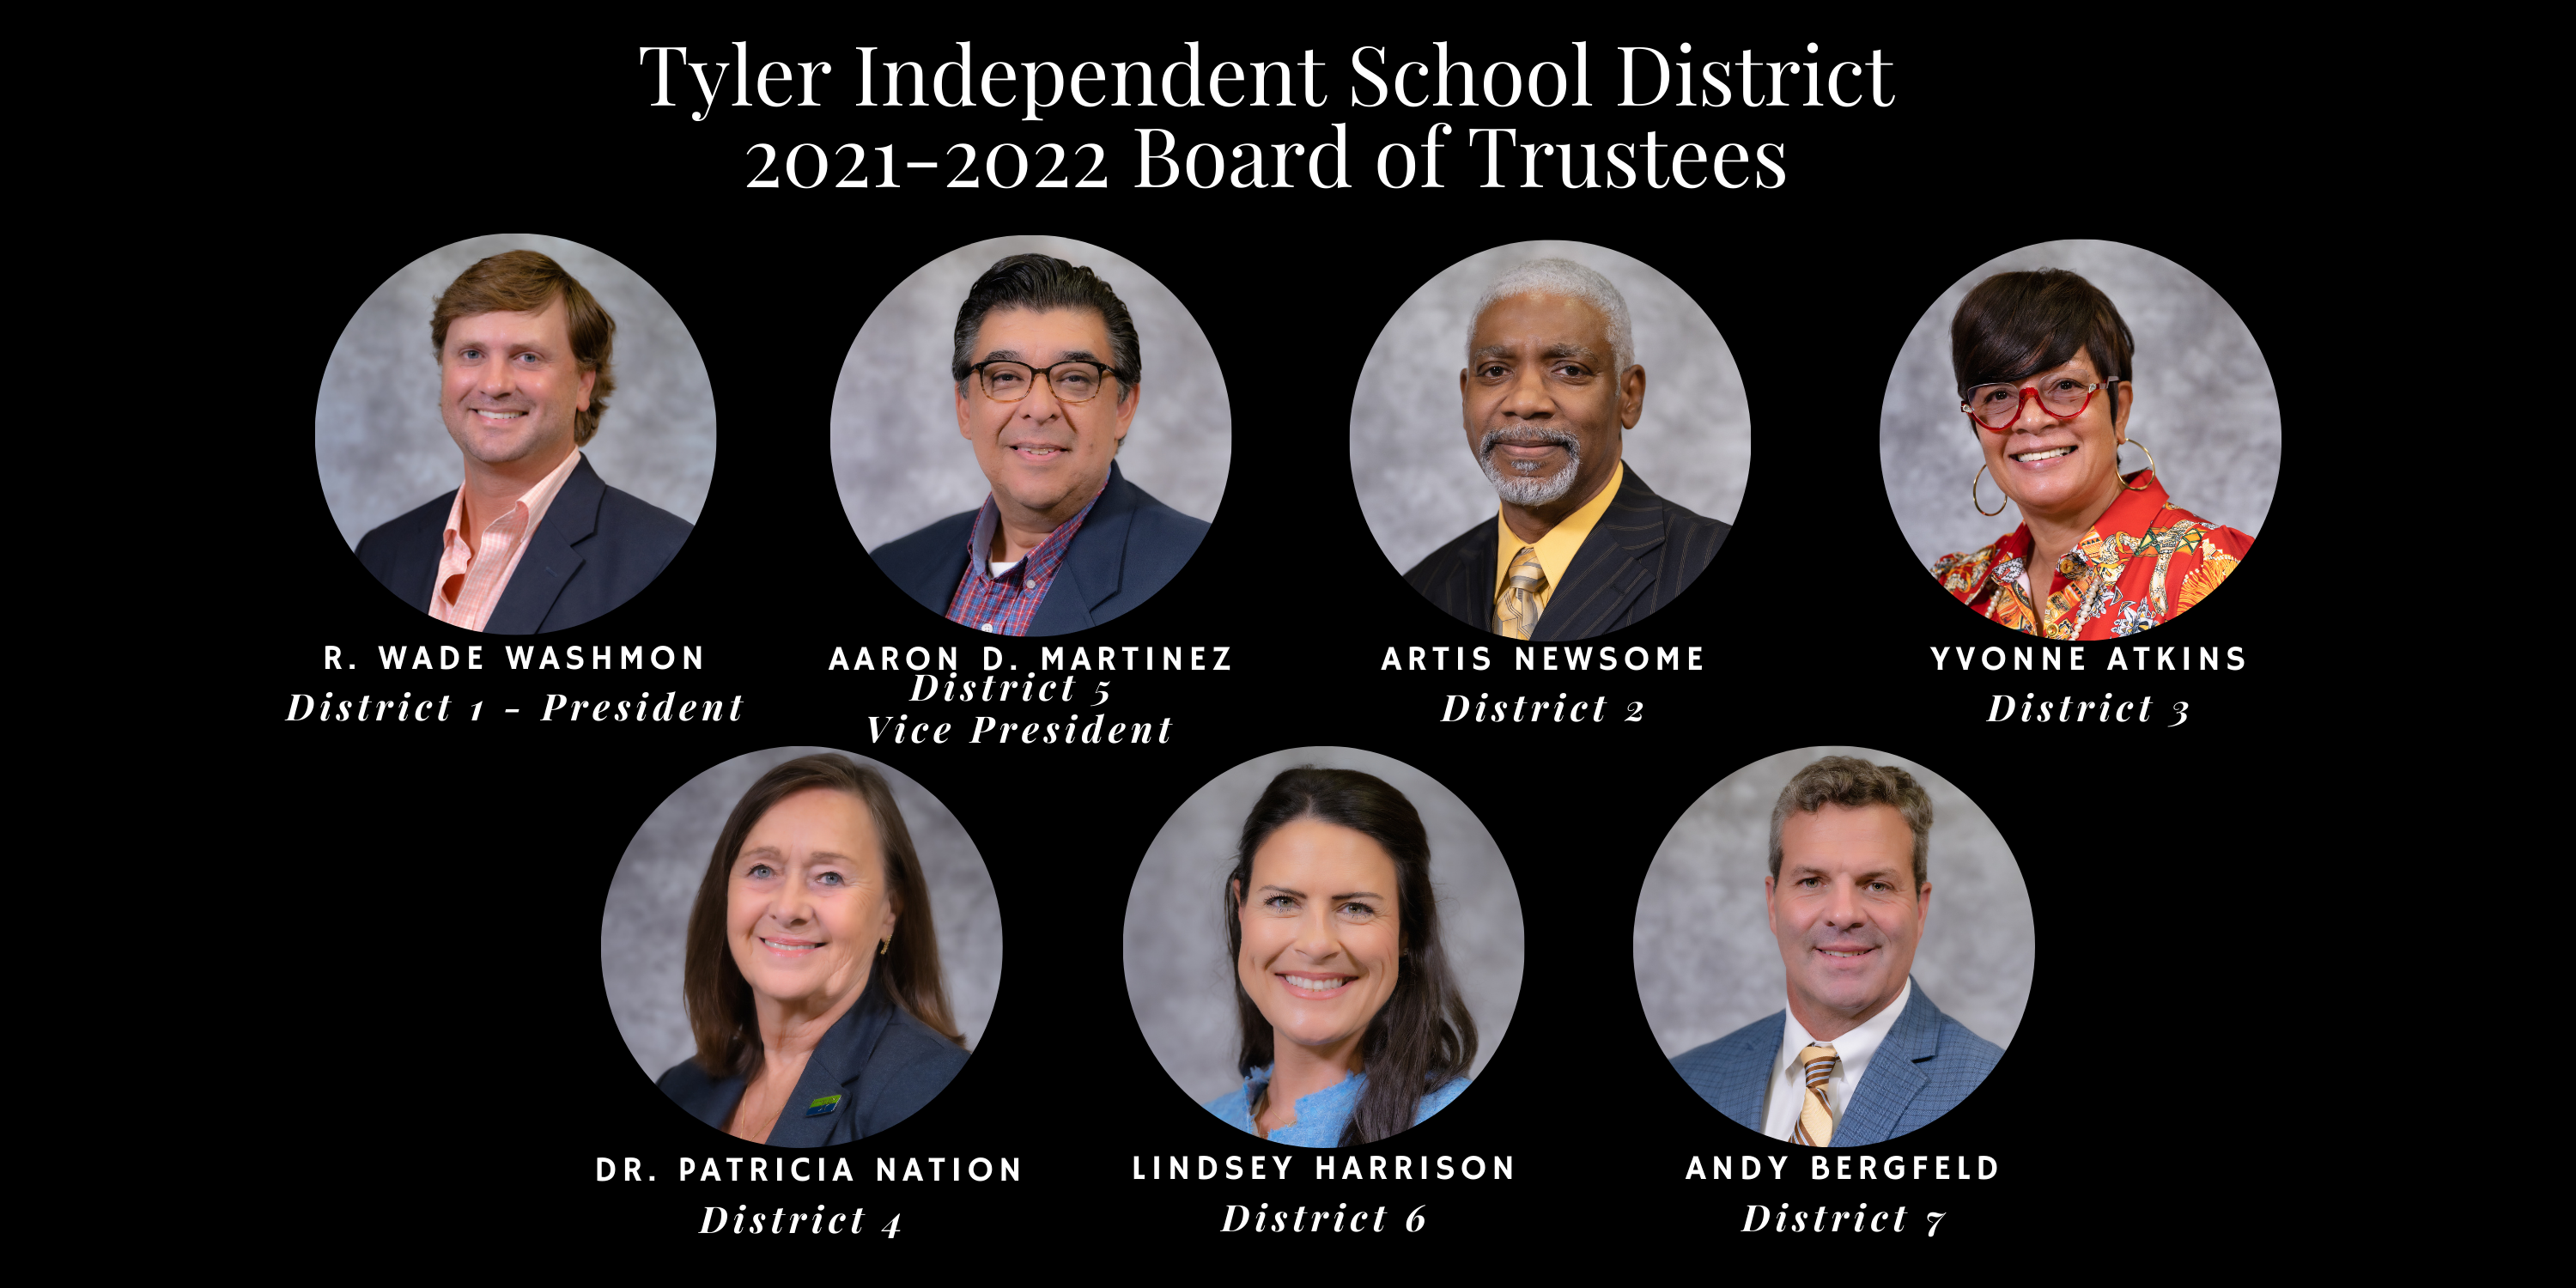 Tyler Independent School District 2021-2022 Board of Trustees. R. Wade Washmon District 1 - President, Aaron Martinez District 5 – Vice President, Artis Newsome District 2, Yvonne Atkins District 3, Dr. Patricia Nation District 4, Lindsey Harrison District 6,   Andy Bergfeld District 7